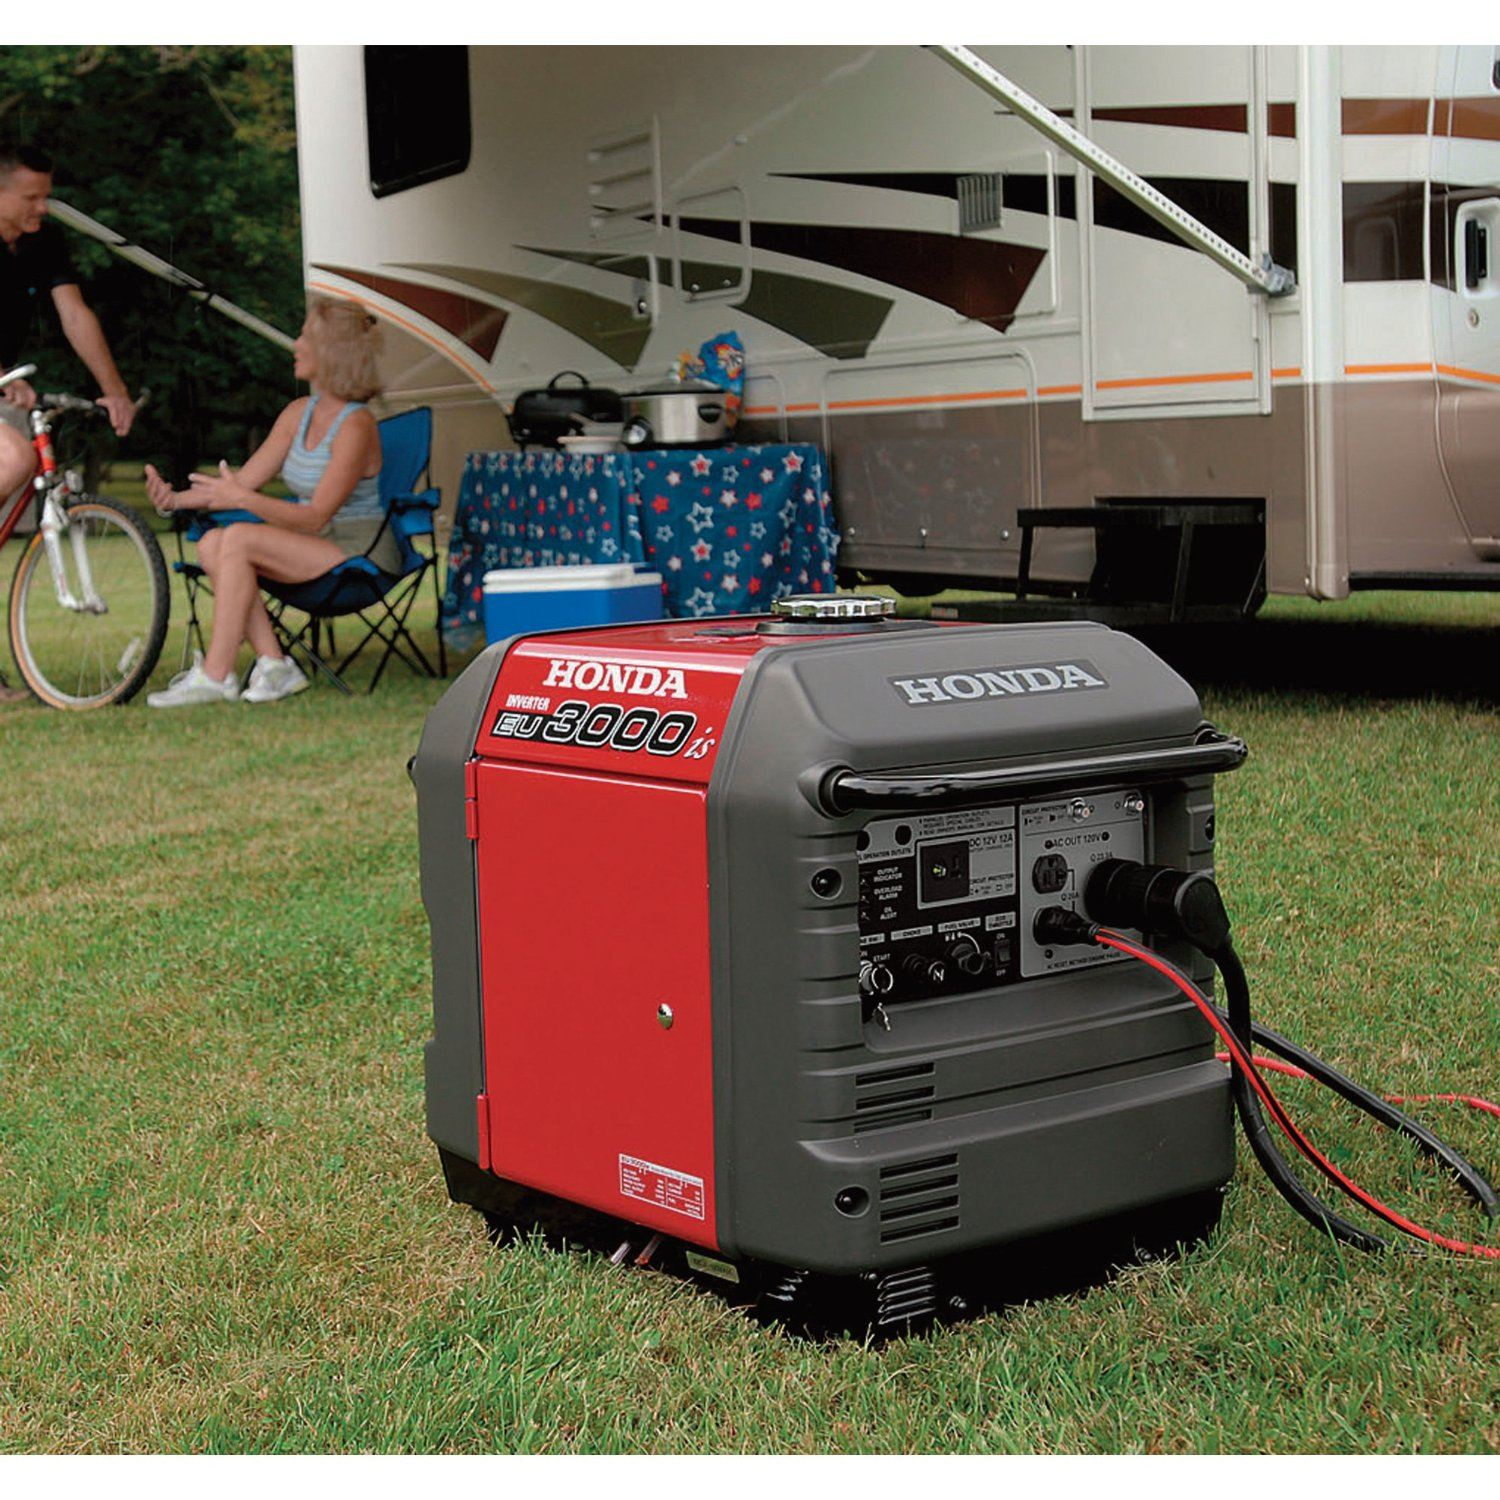 Inverter generator honda eu7000is watt portable quiet for Honda vs yamaha generator